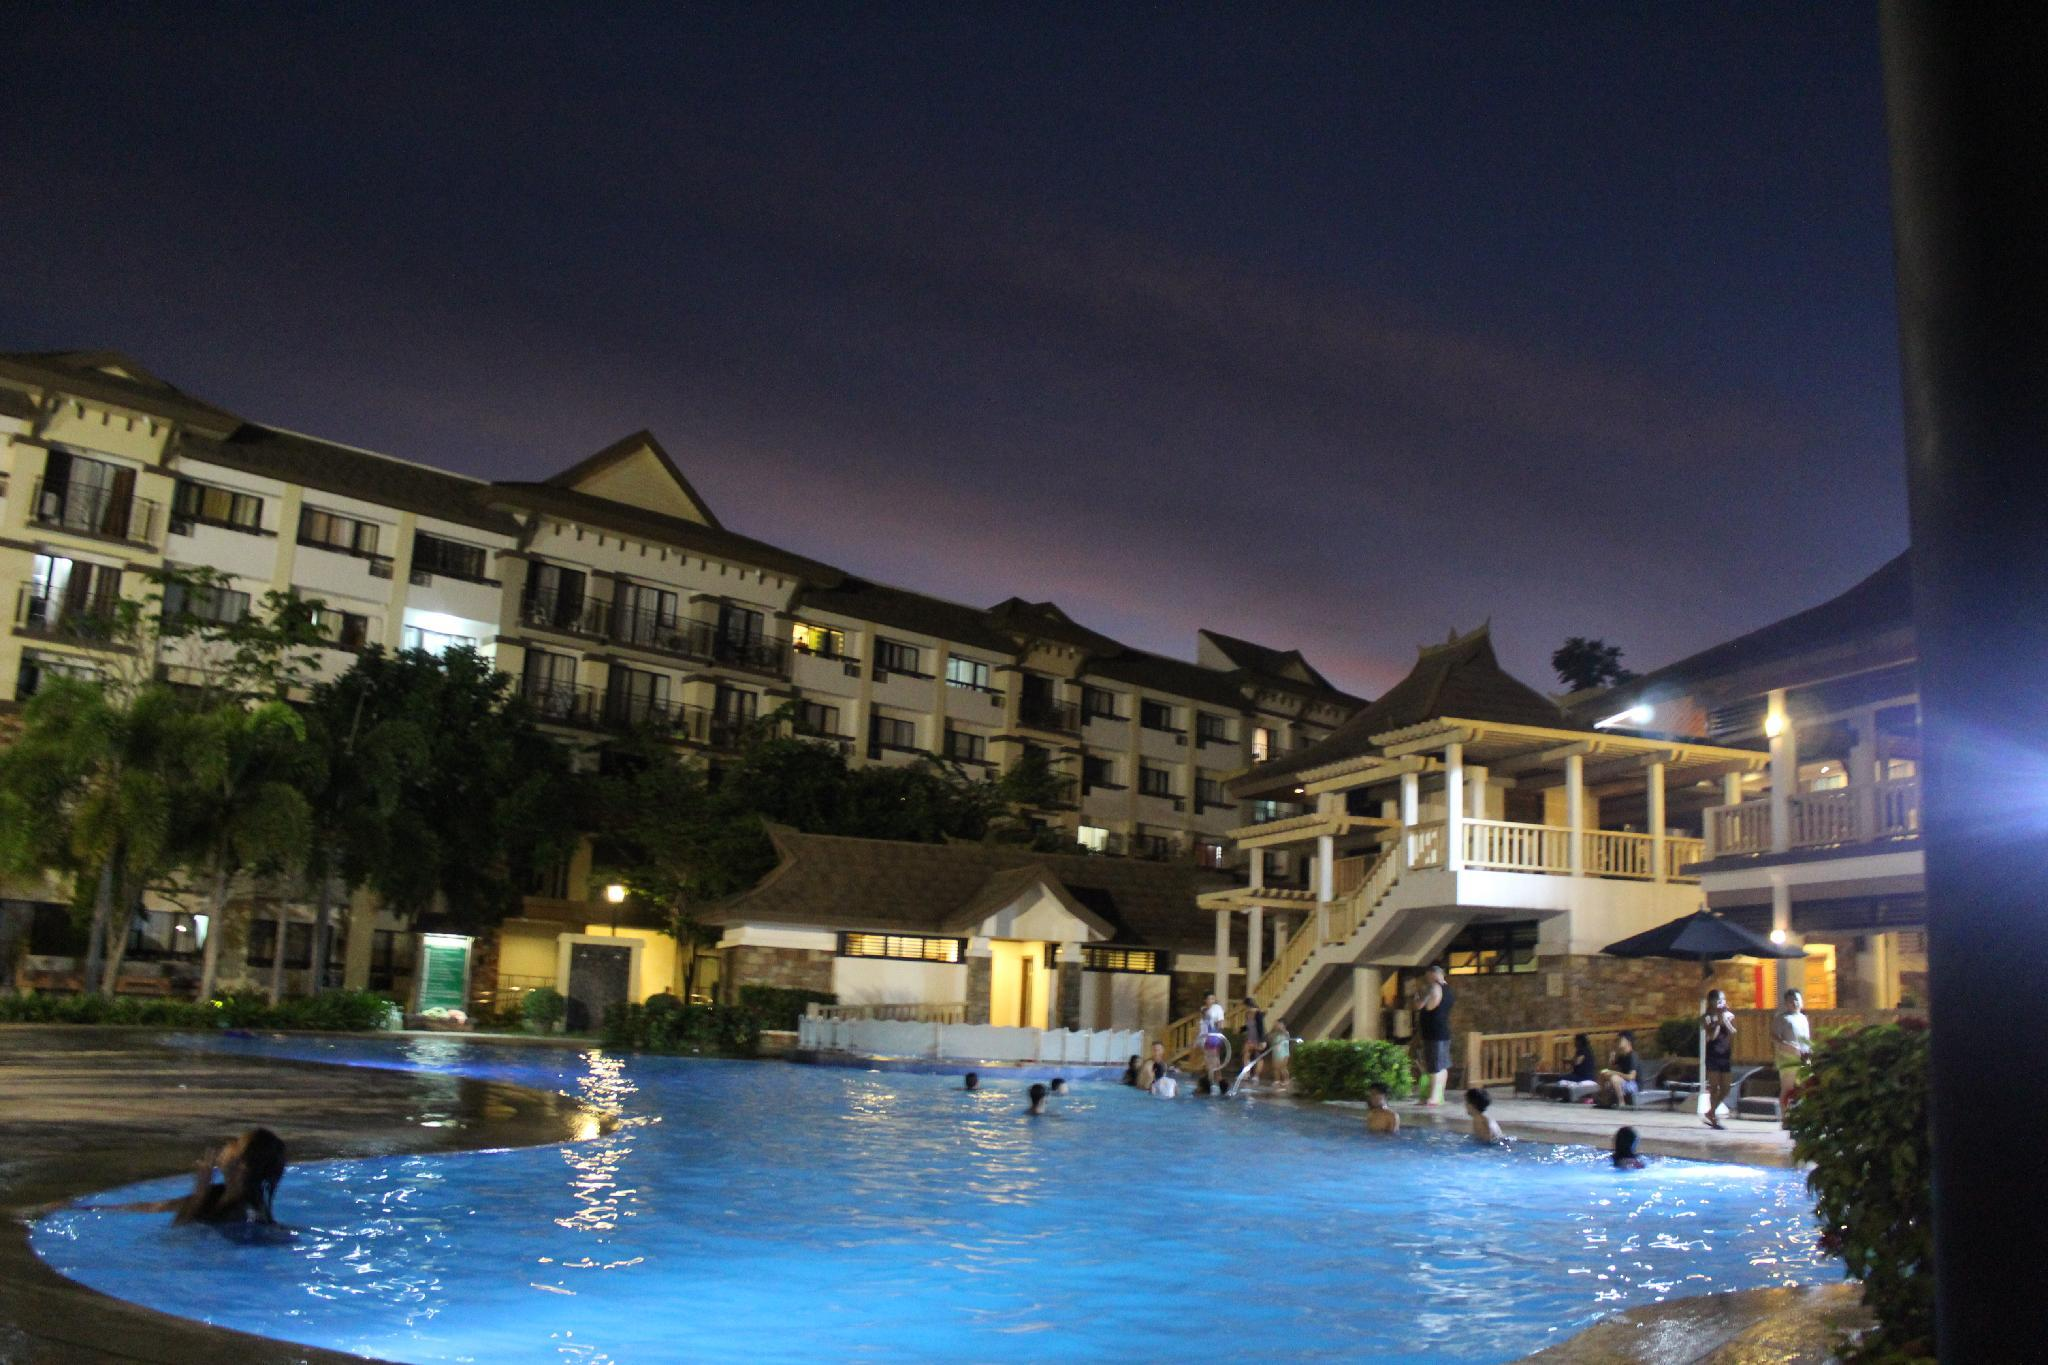 ONE OASIS A4 FREE POOL BACK OF SM MALL DAVAO